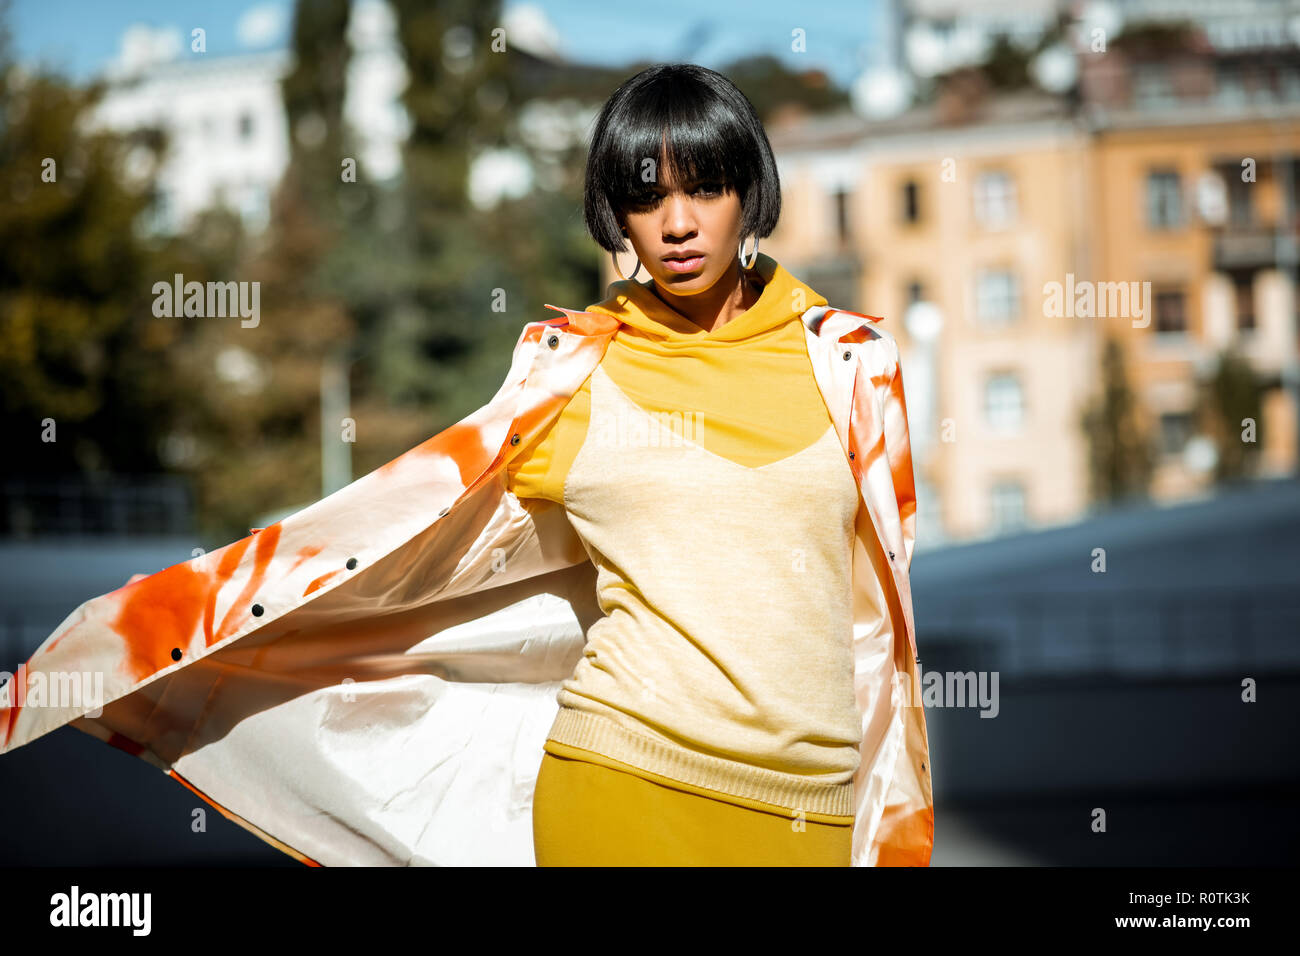 Serious young brown girl opening her cloak - Stock Image